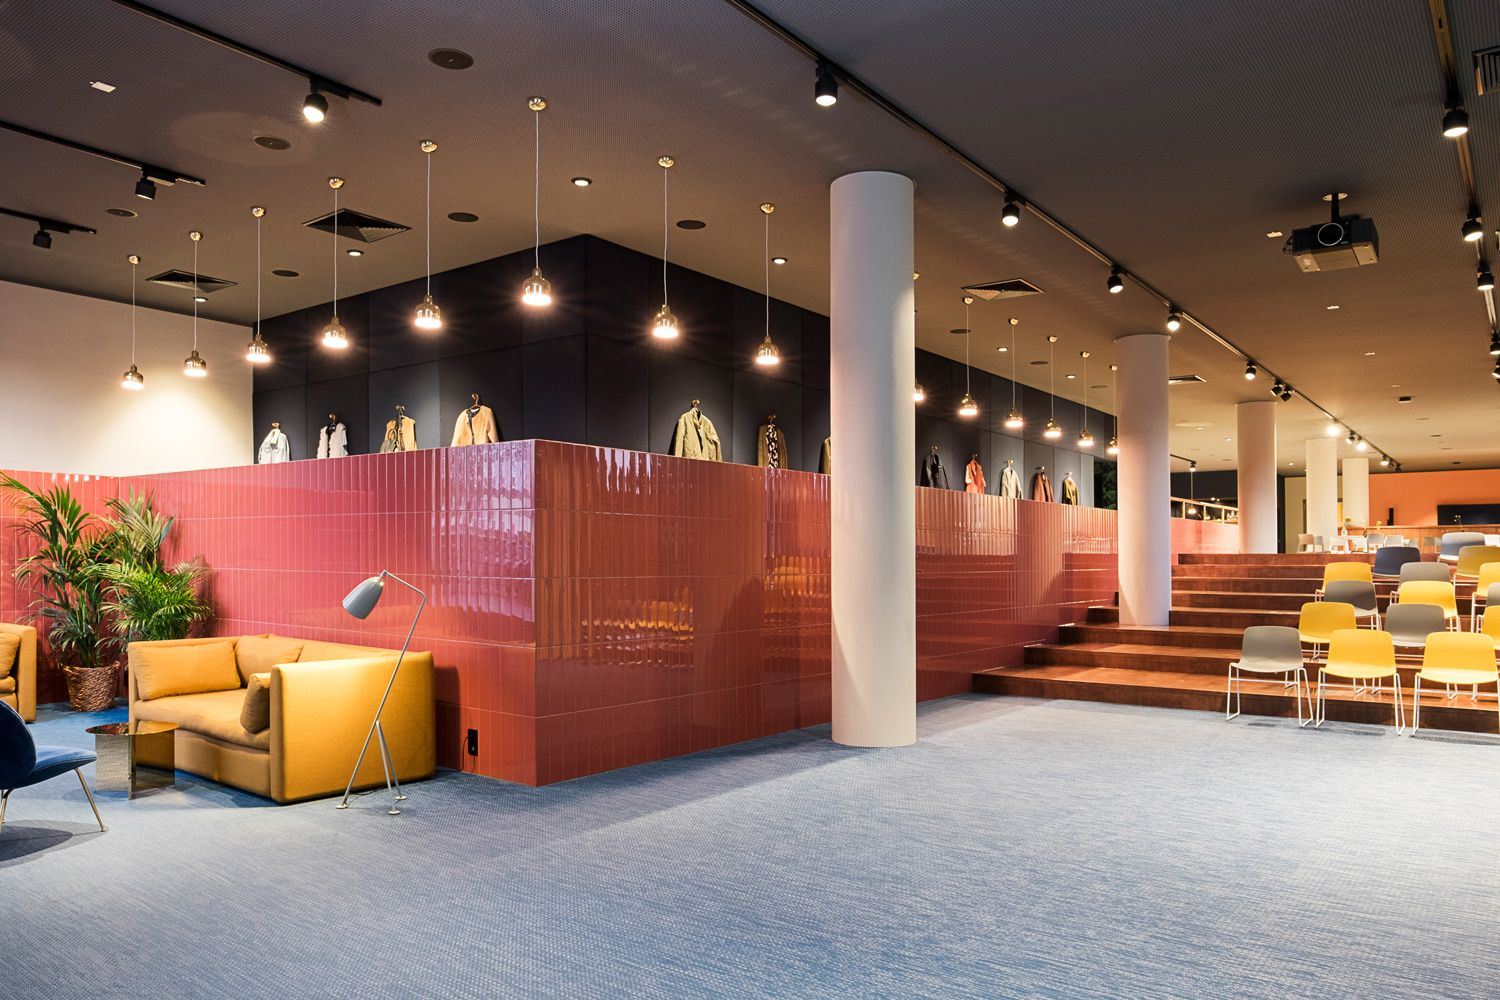 Hülle & Fülle have designed a new multi-purpose space for an online fashion retailer Zalando, located in Berlin, Germany.